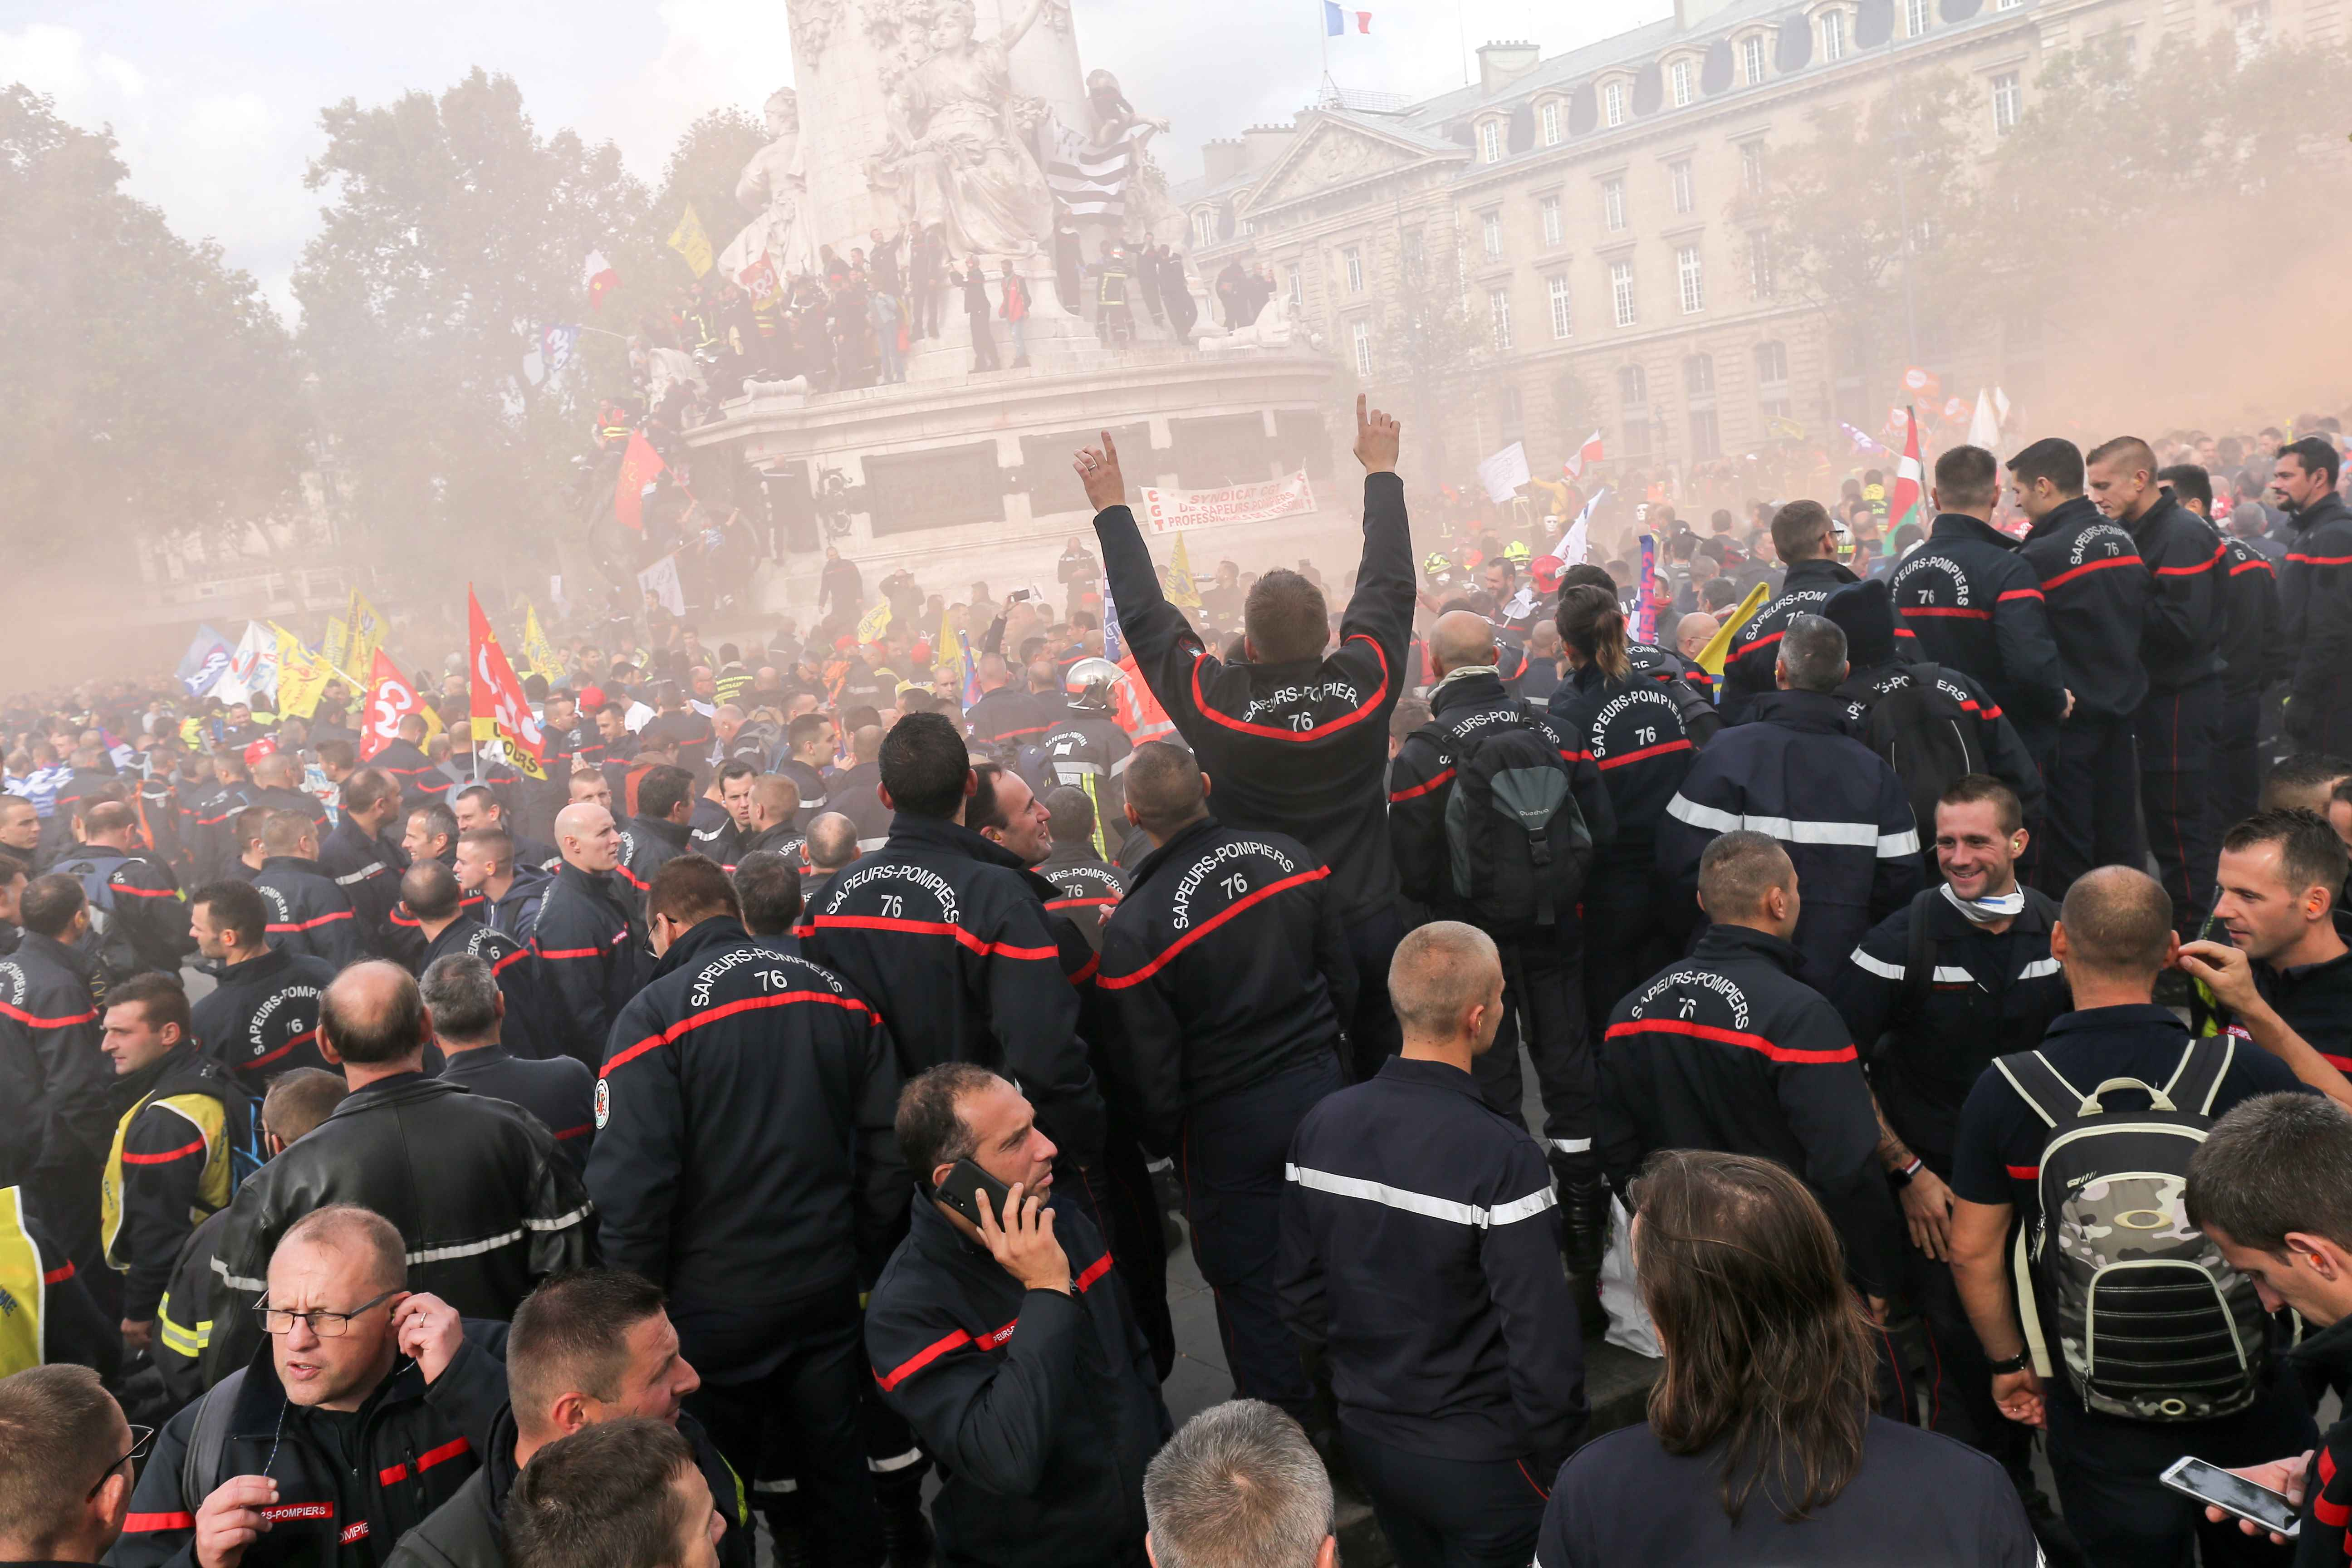 Firefighters protest at place de la Republique, during the day of mobilization and national demonstration of the professional French firefighters in Paris, on October 15, 2019.